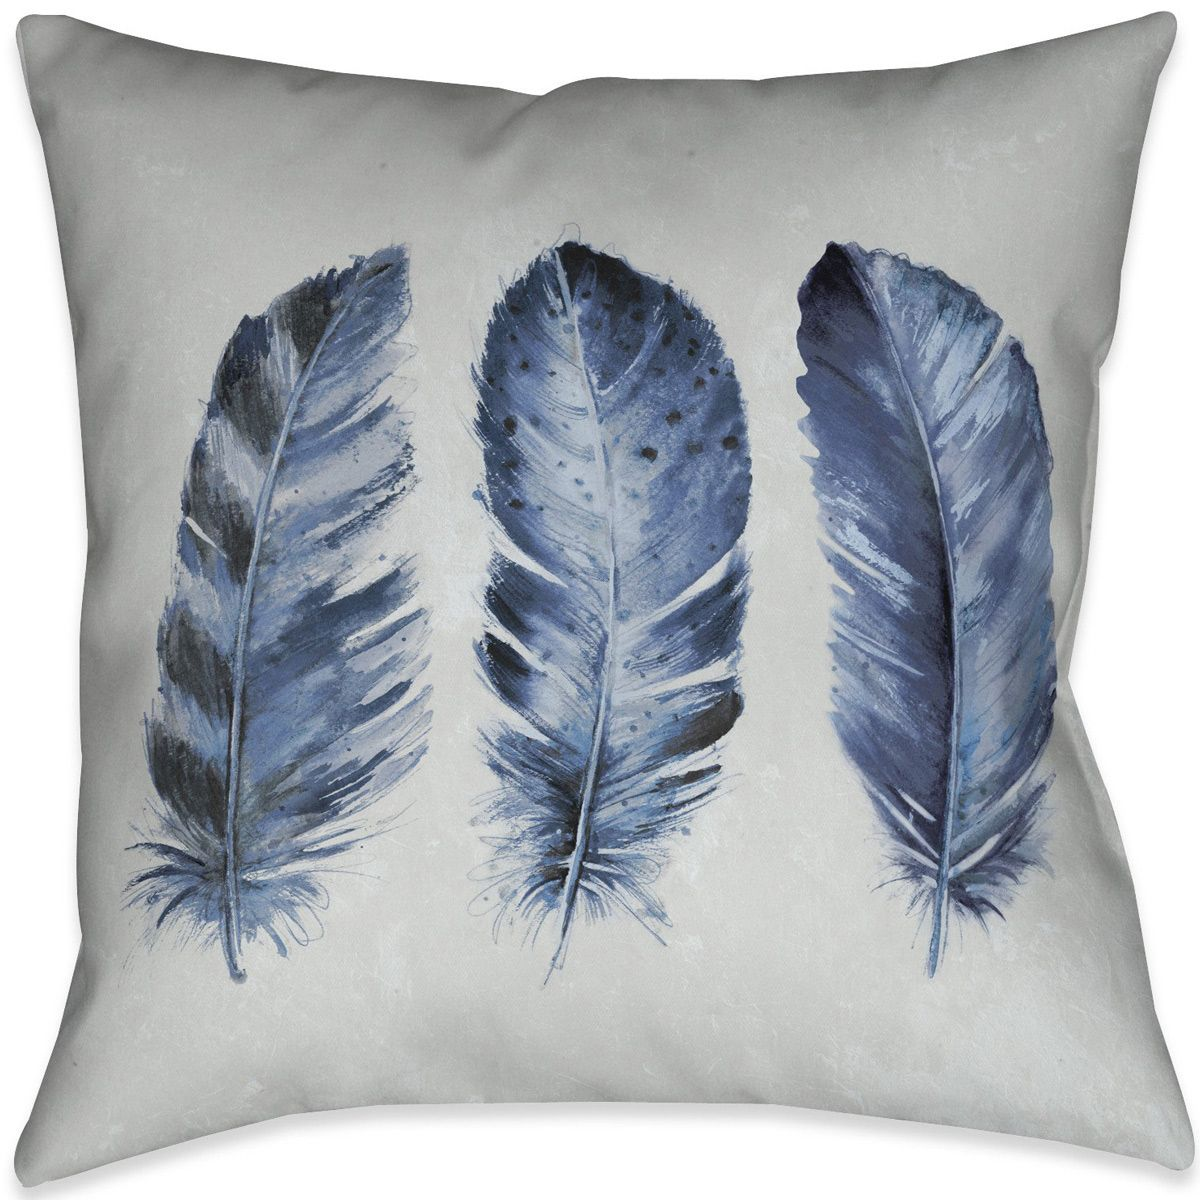 Feather River II Indoor Pillow